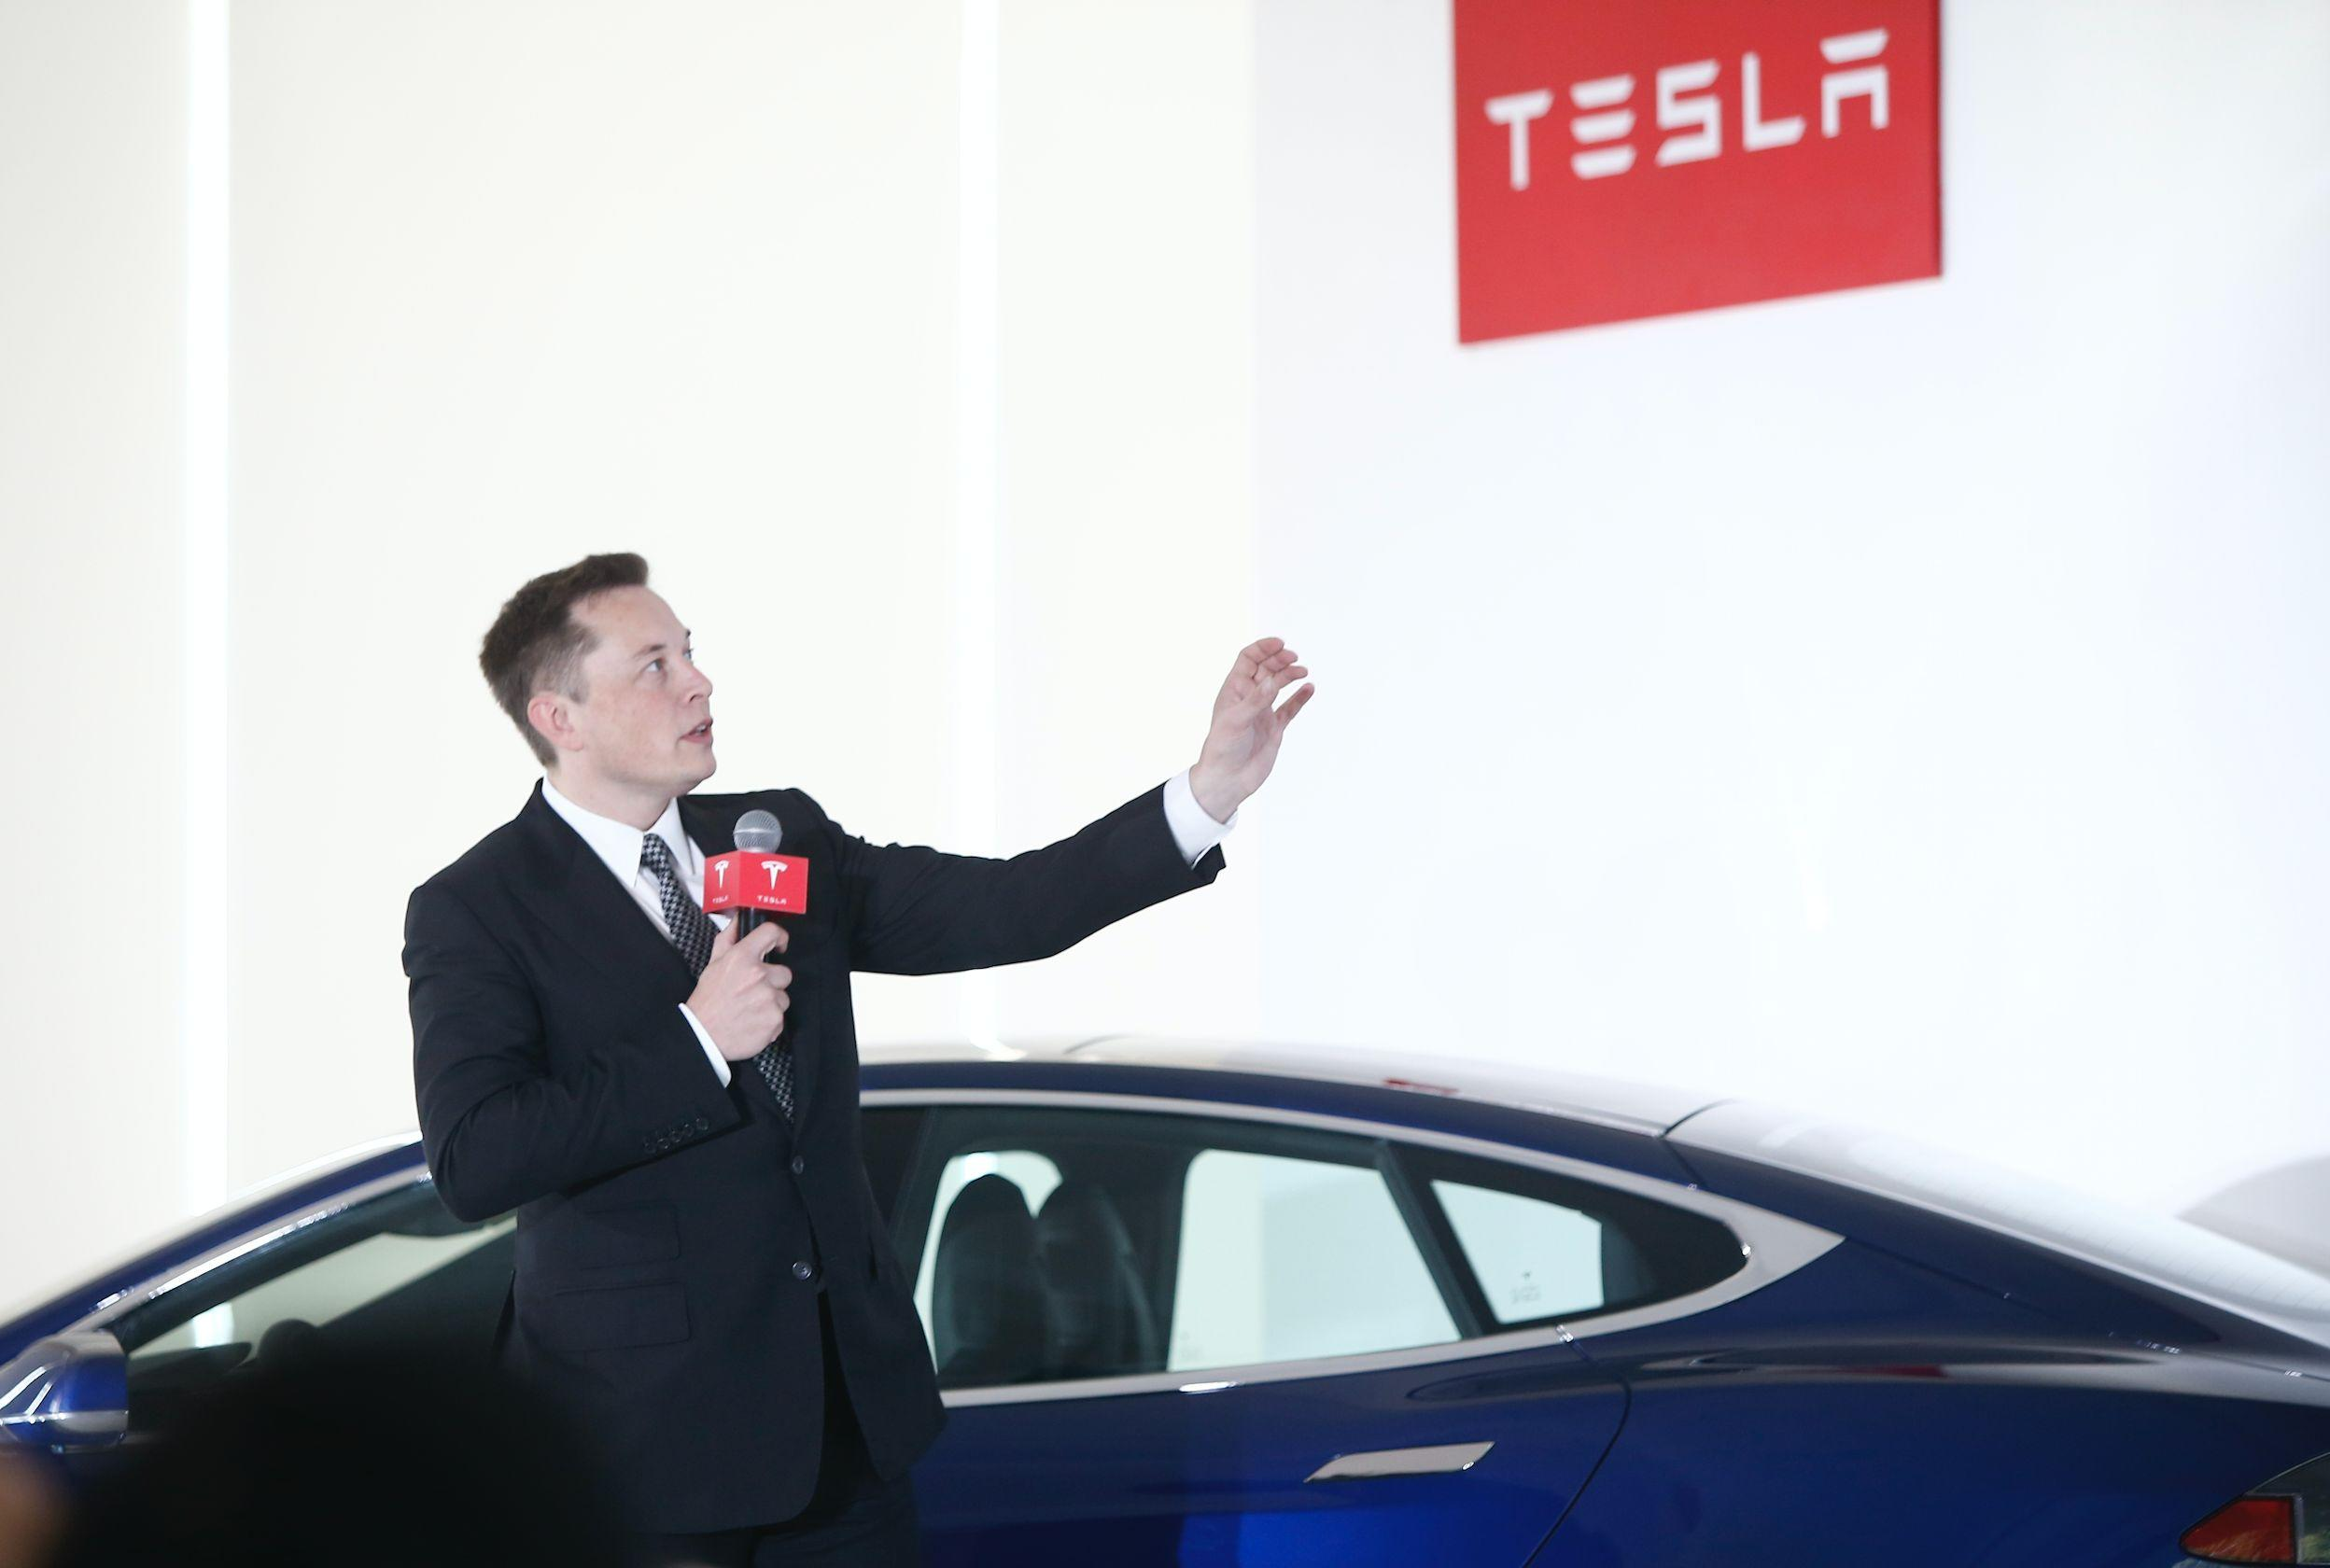 Tilson on Tesla: 'This is the beginning of the end'